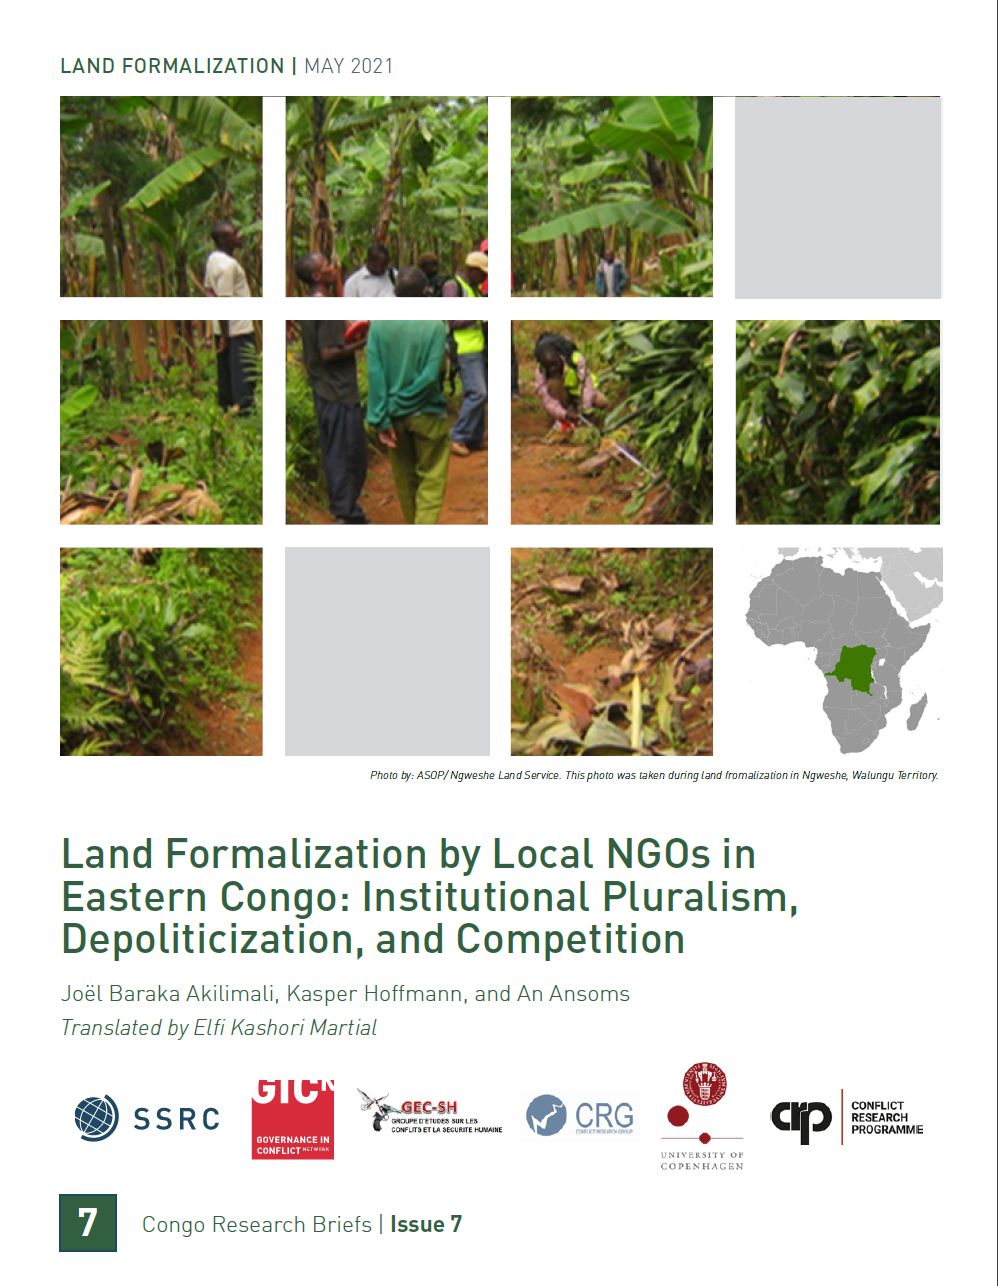 land-formalization-by-local-ngos-in-eastern-congo-institutional-pluralism-depoliticization-and-competition